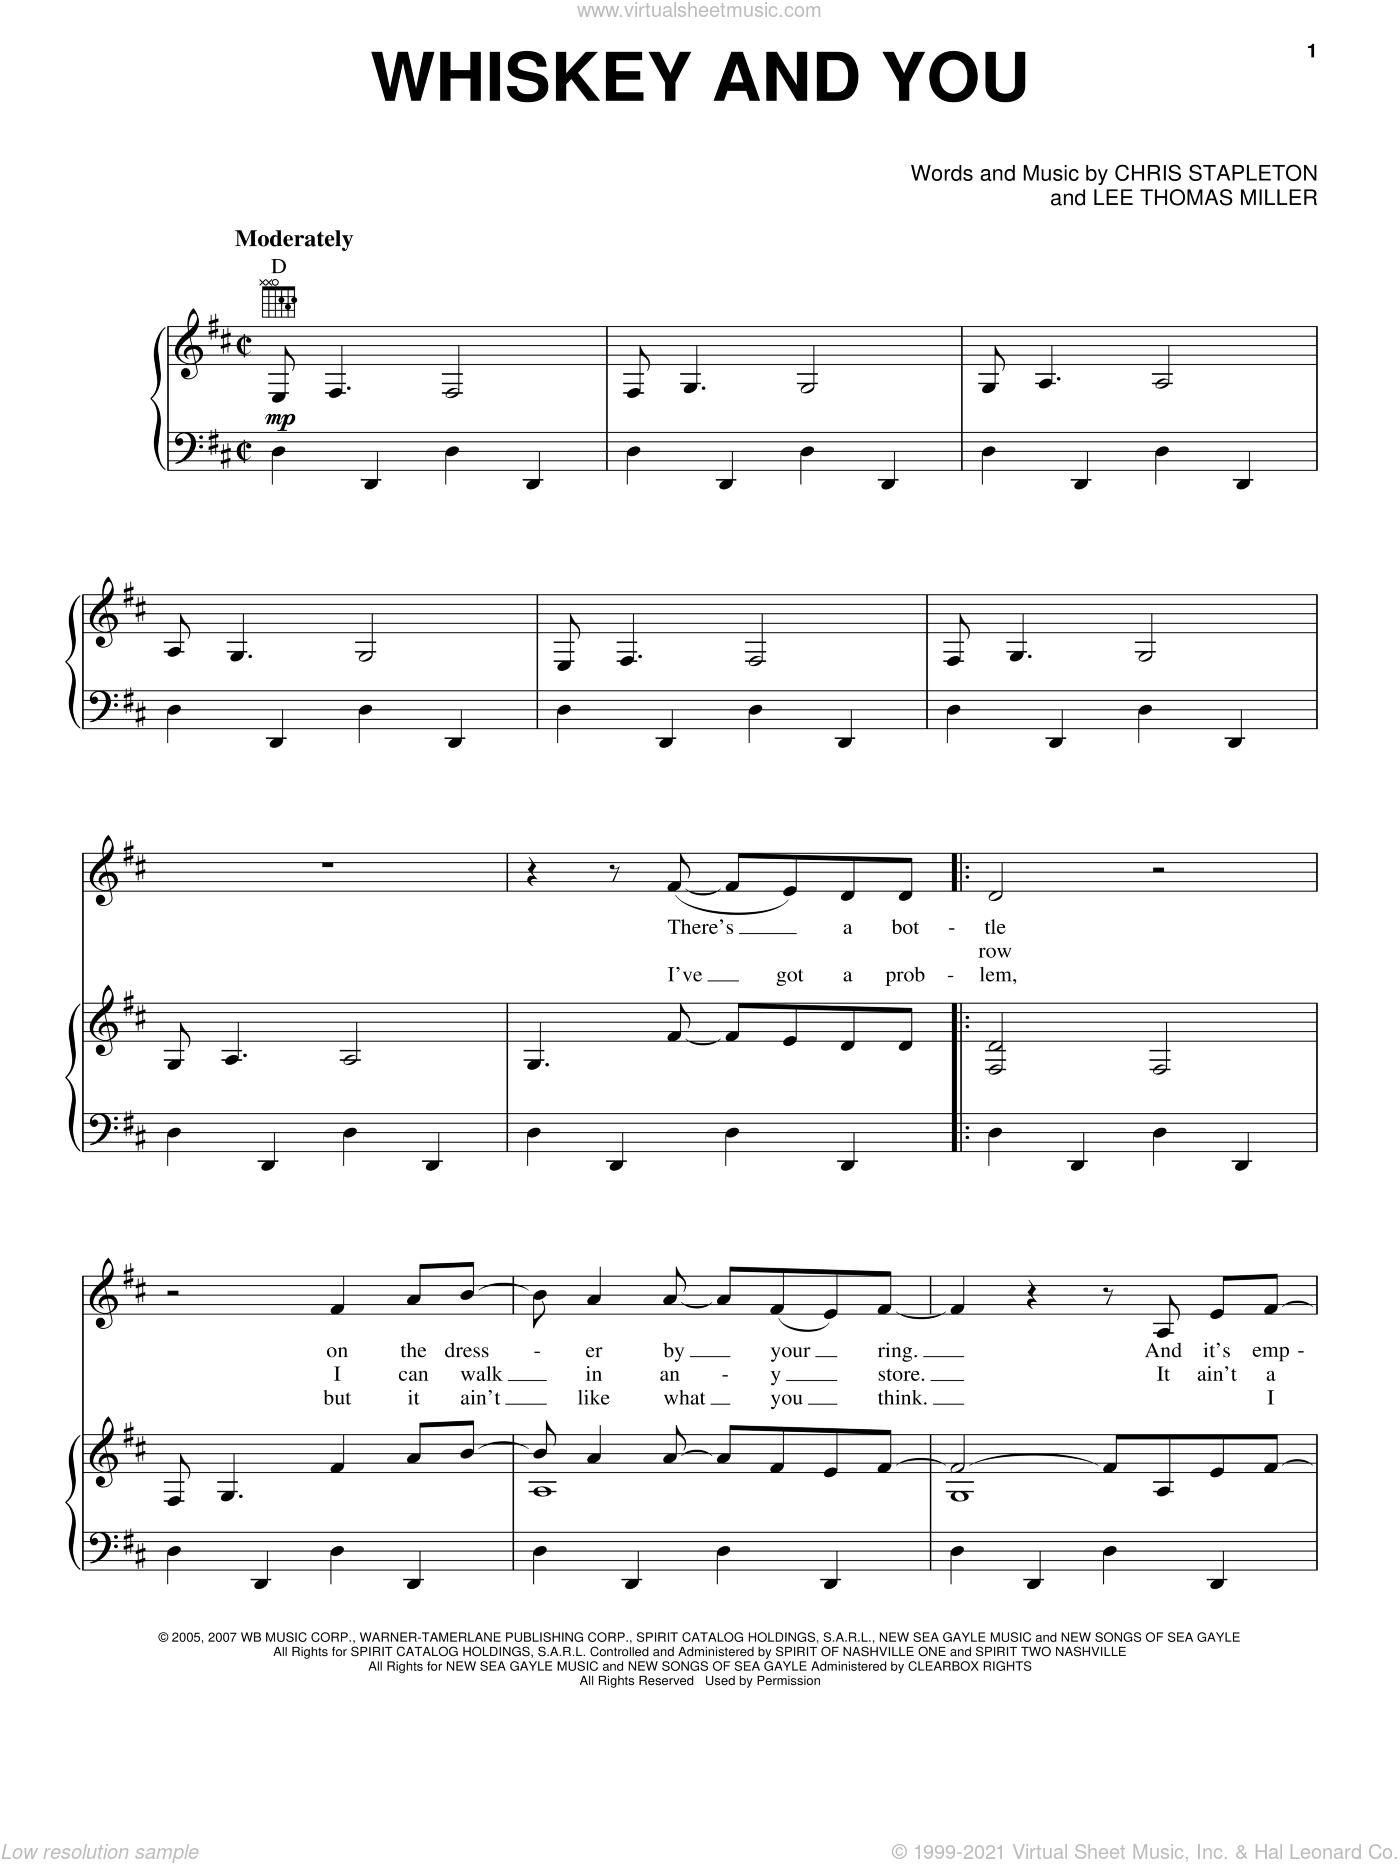 Whiskey And You sheet music for voice, piano or guitar by Chris Stapleton, Tim McGraw and Lee Thomas Miller, intermediate skill level